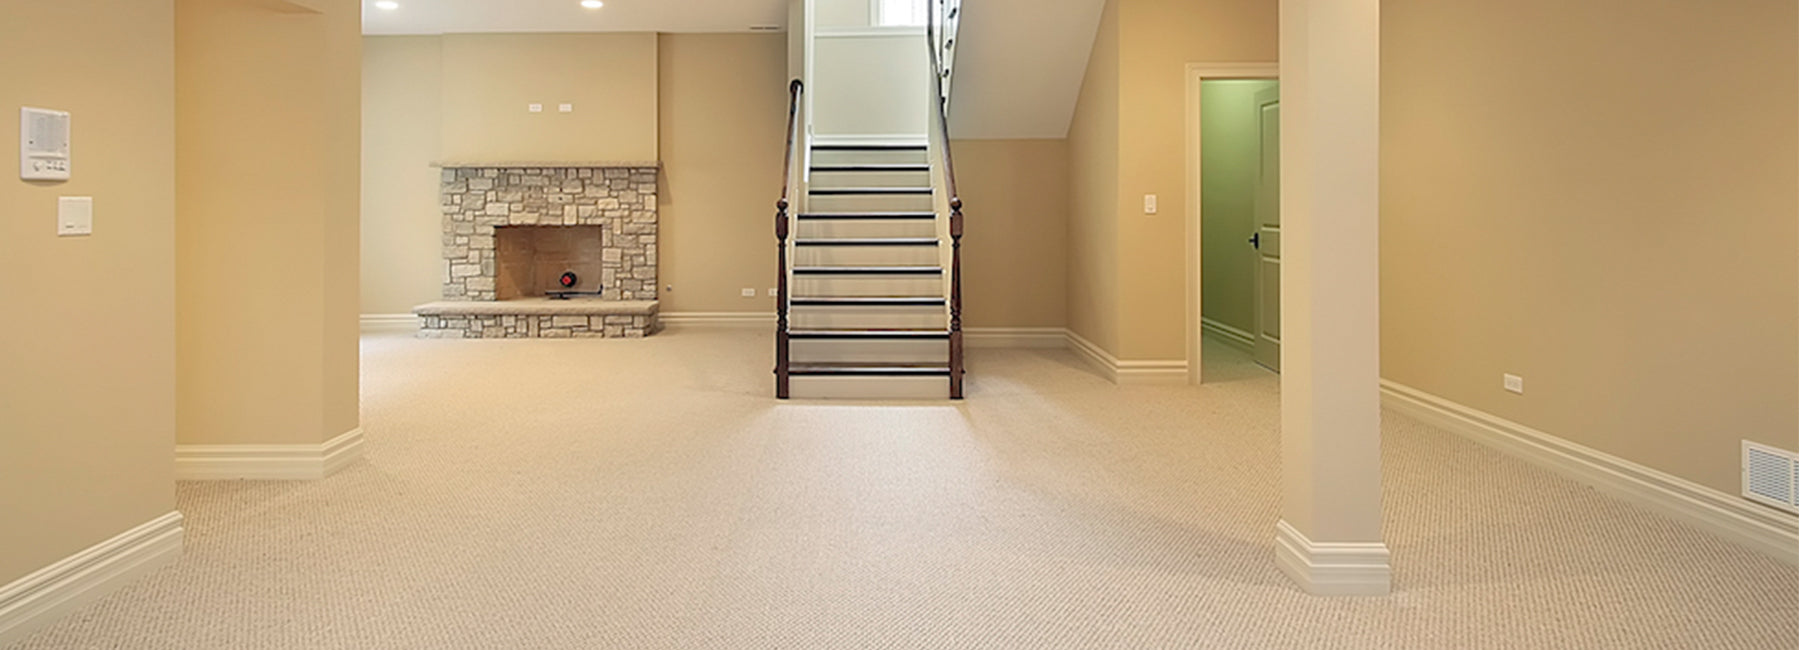 5 Steps to Finishing the Basement